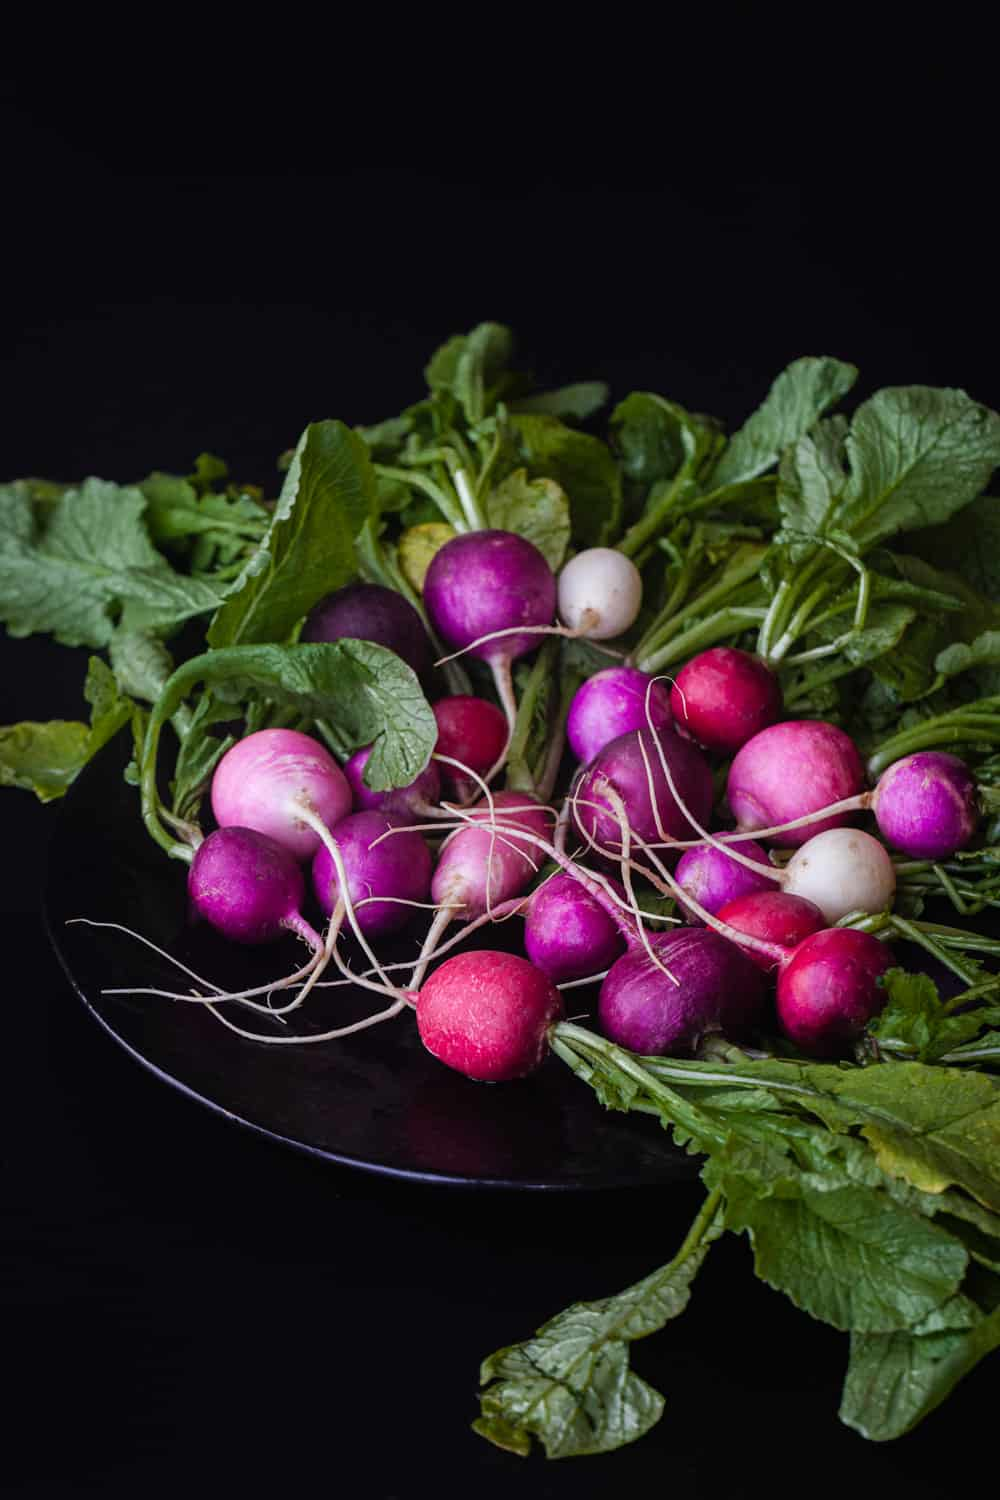 a bunch of raw round radishes on a black plate, the classic radish variety found at most supermarkets.